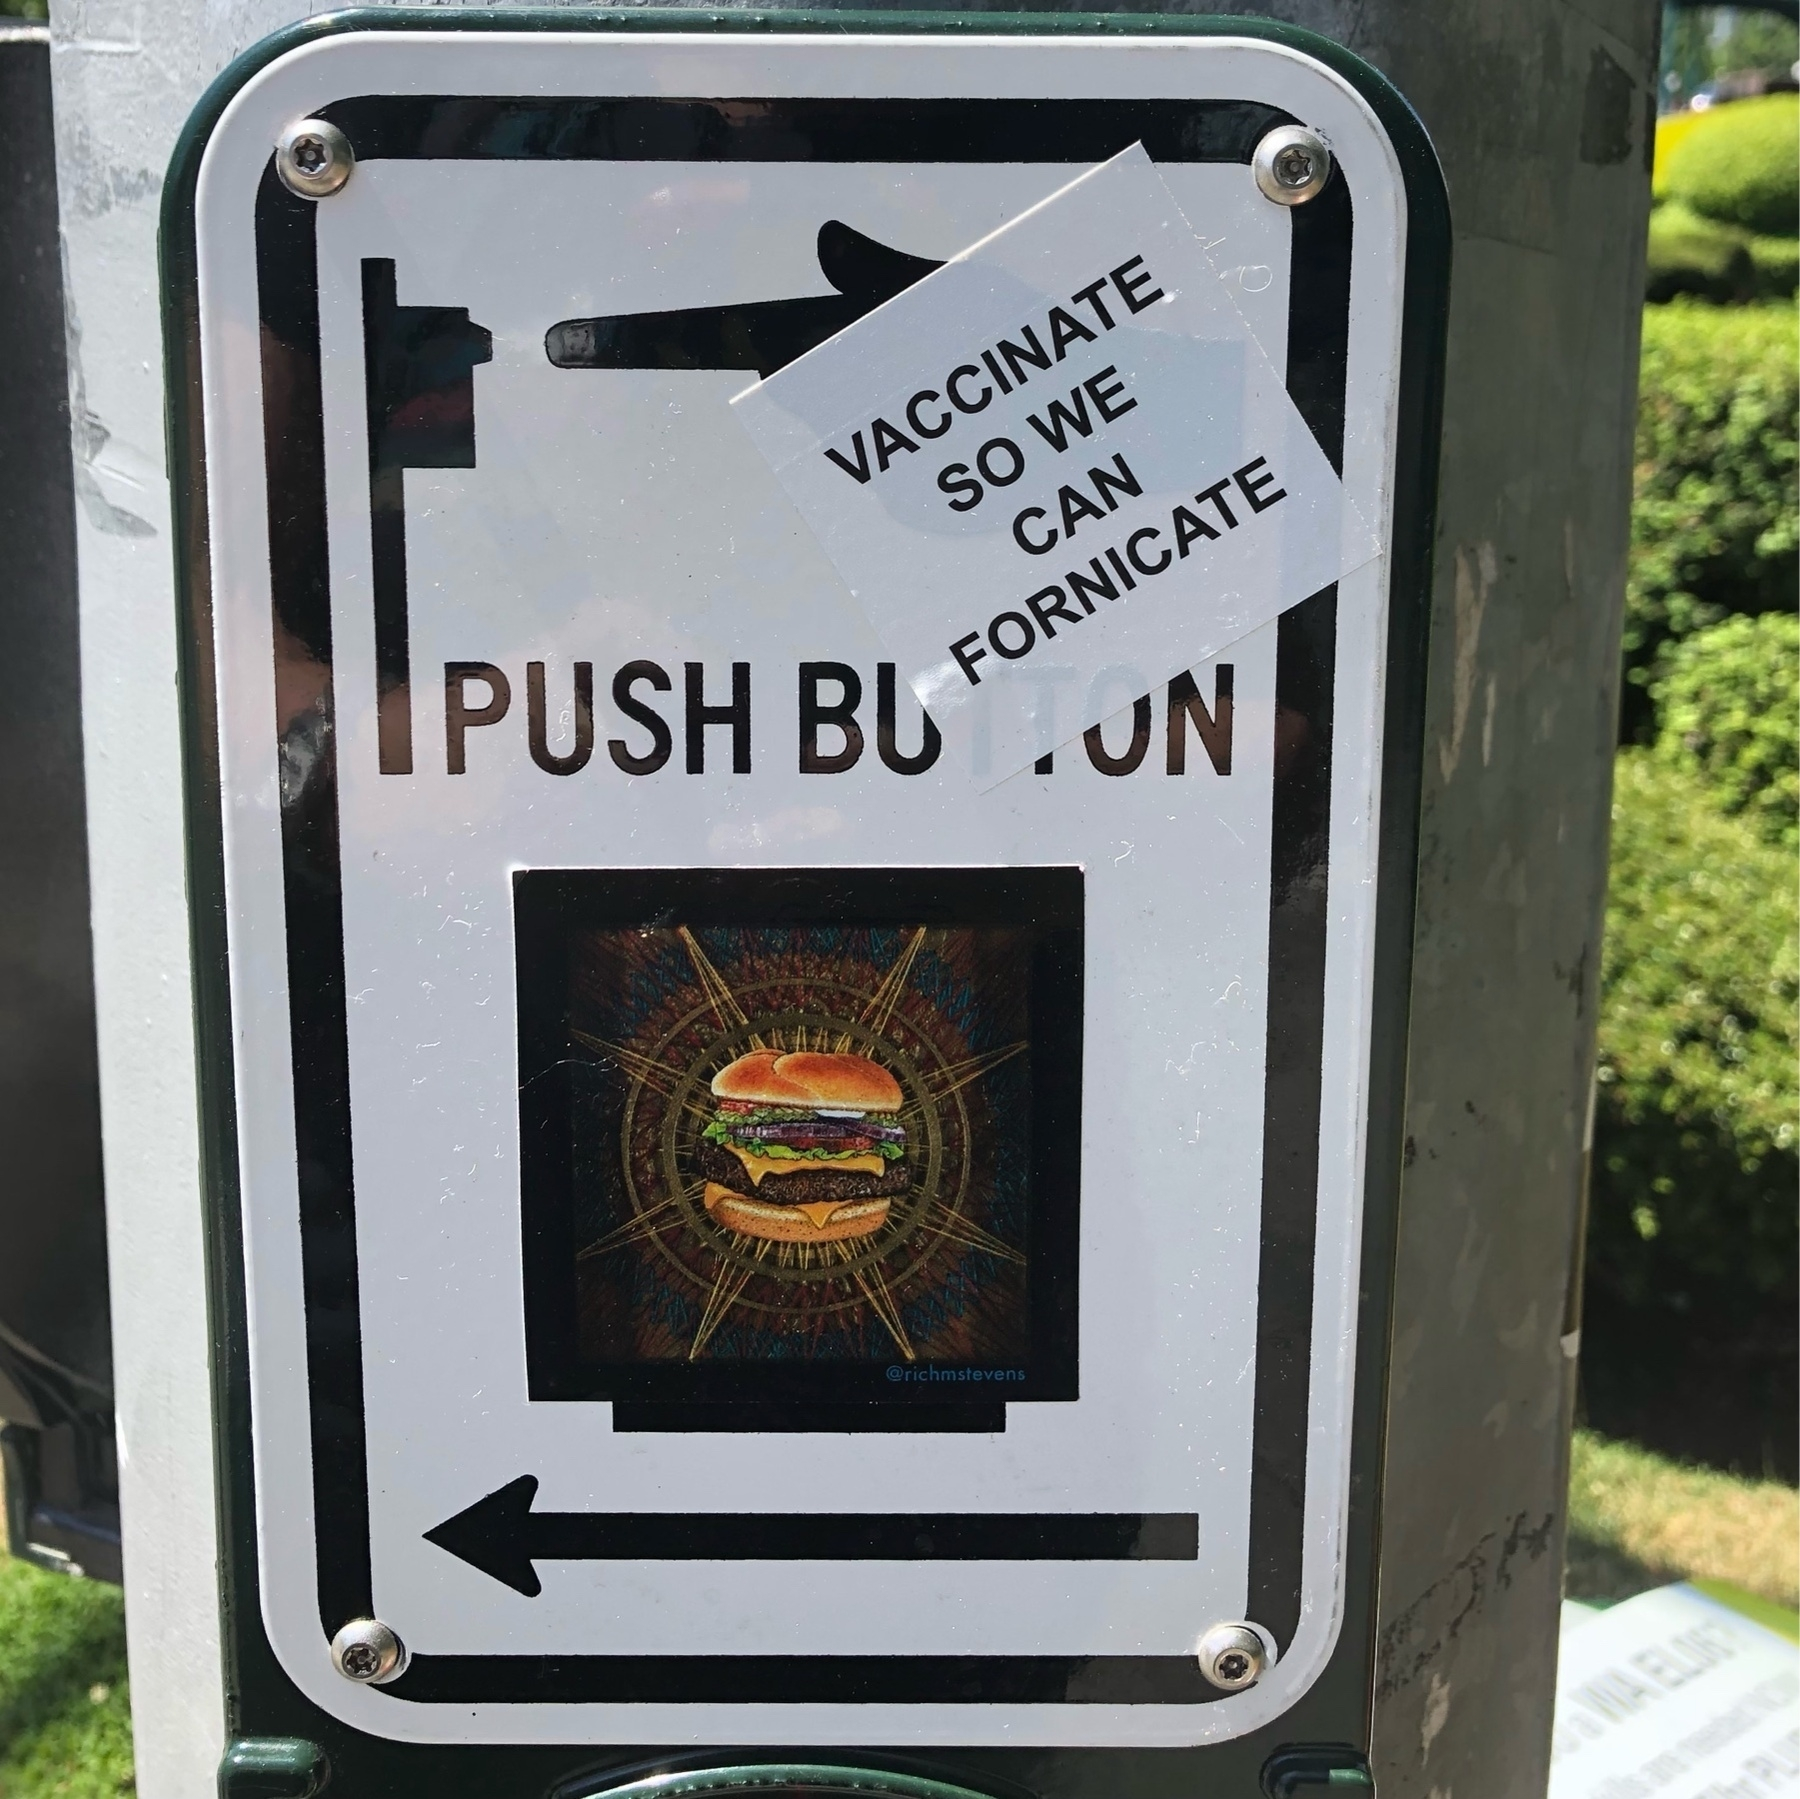 A crosswalk button in Seattle has a sticker on it that says: vaccinate so we can fornicate